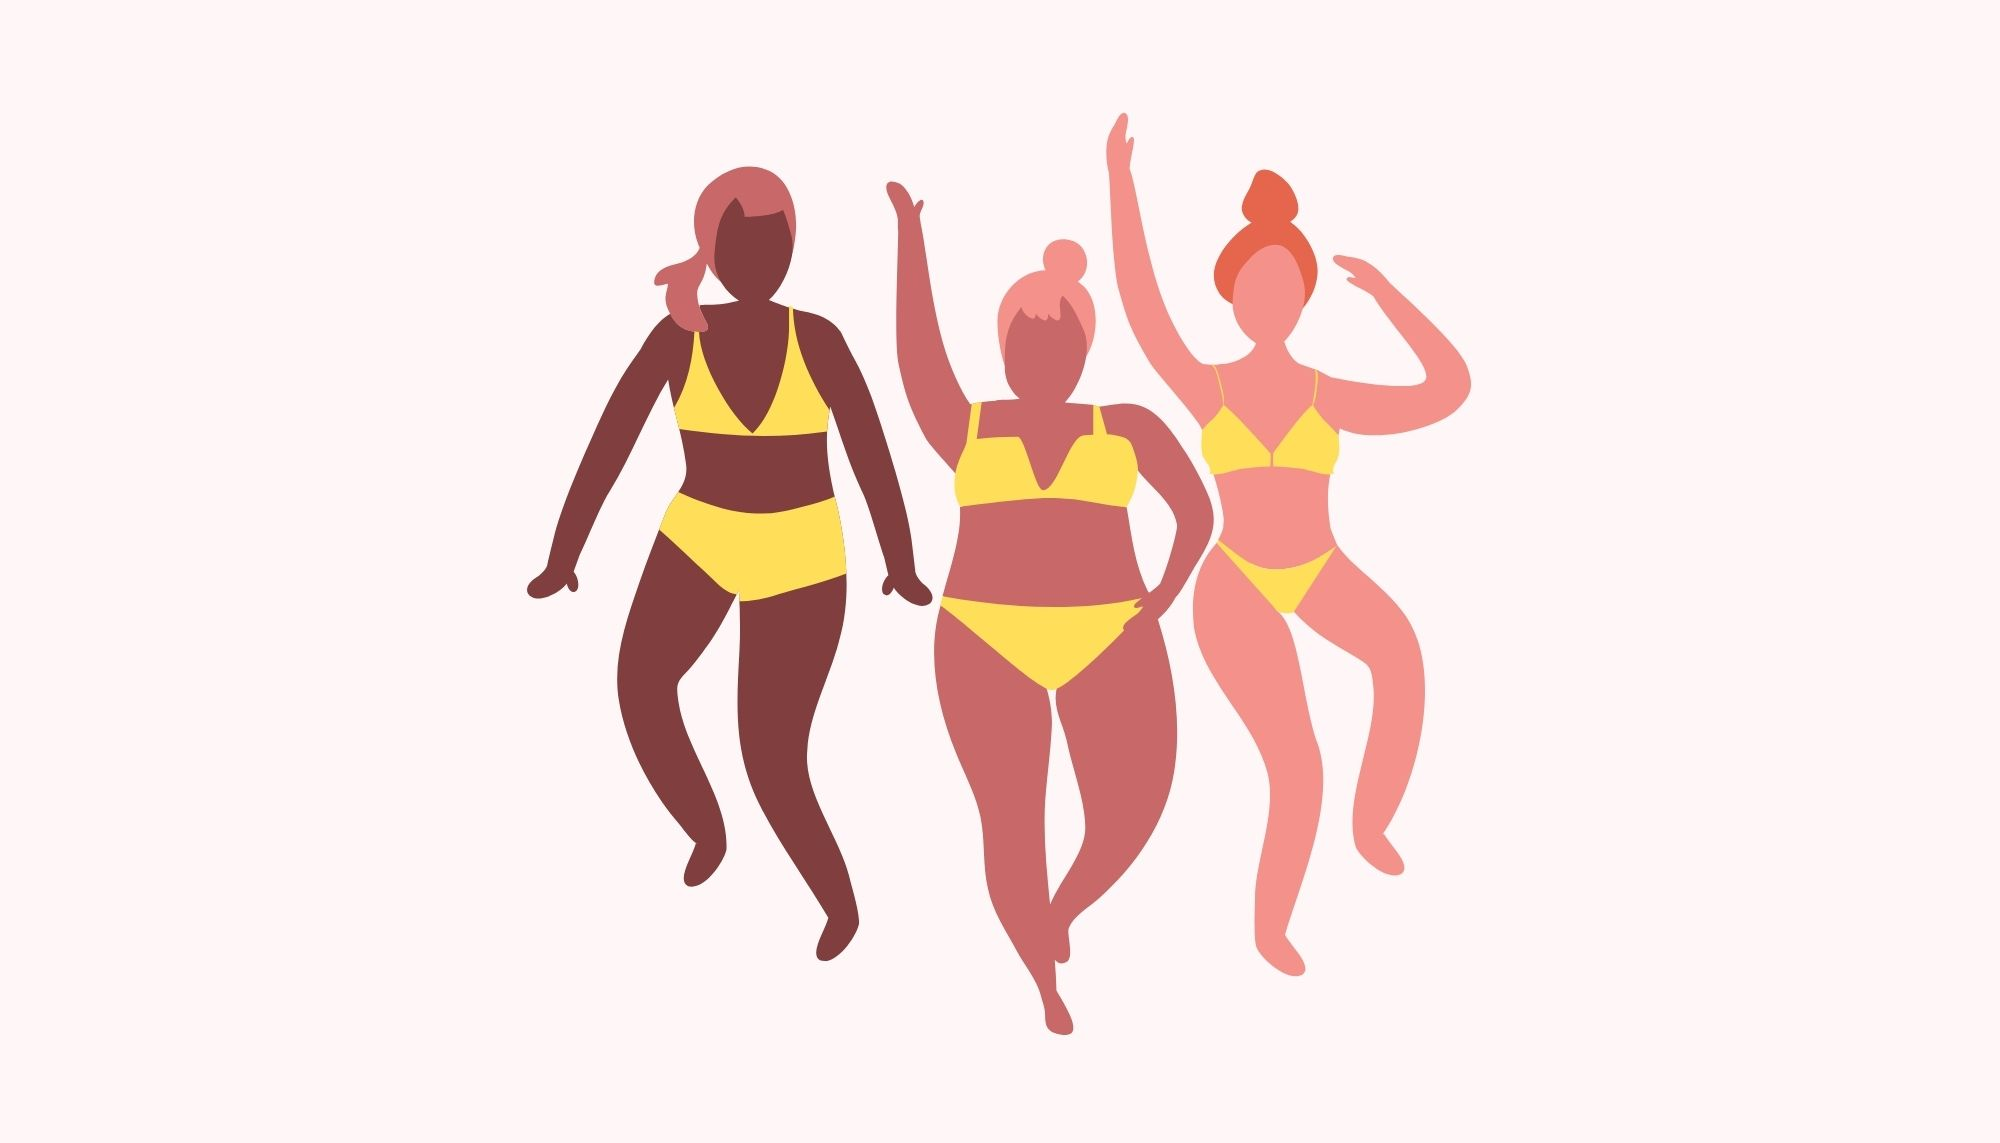 Beachsissi Reviews: Is Their Affordable Swimwear Worth It?